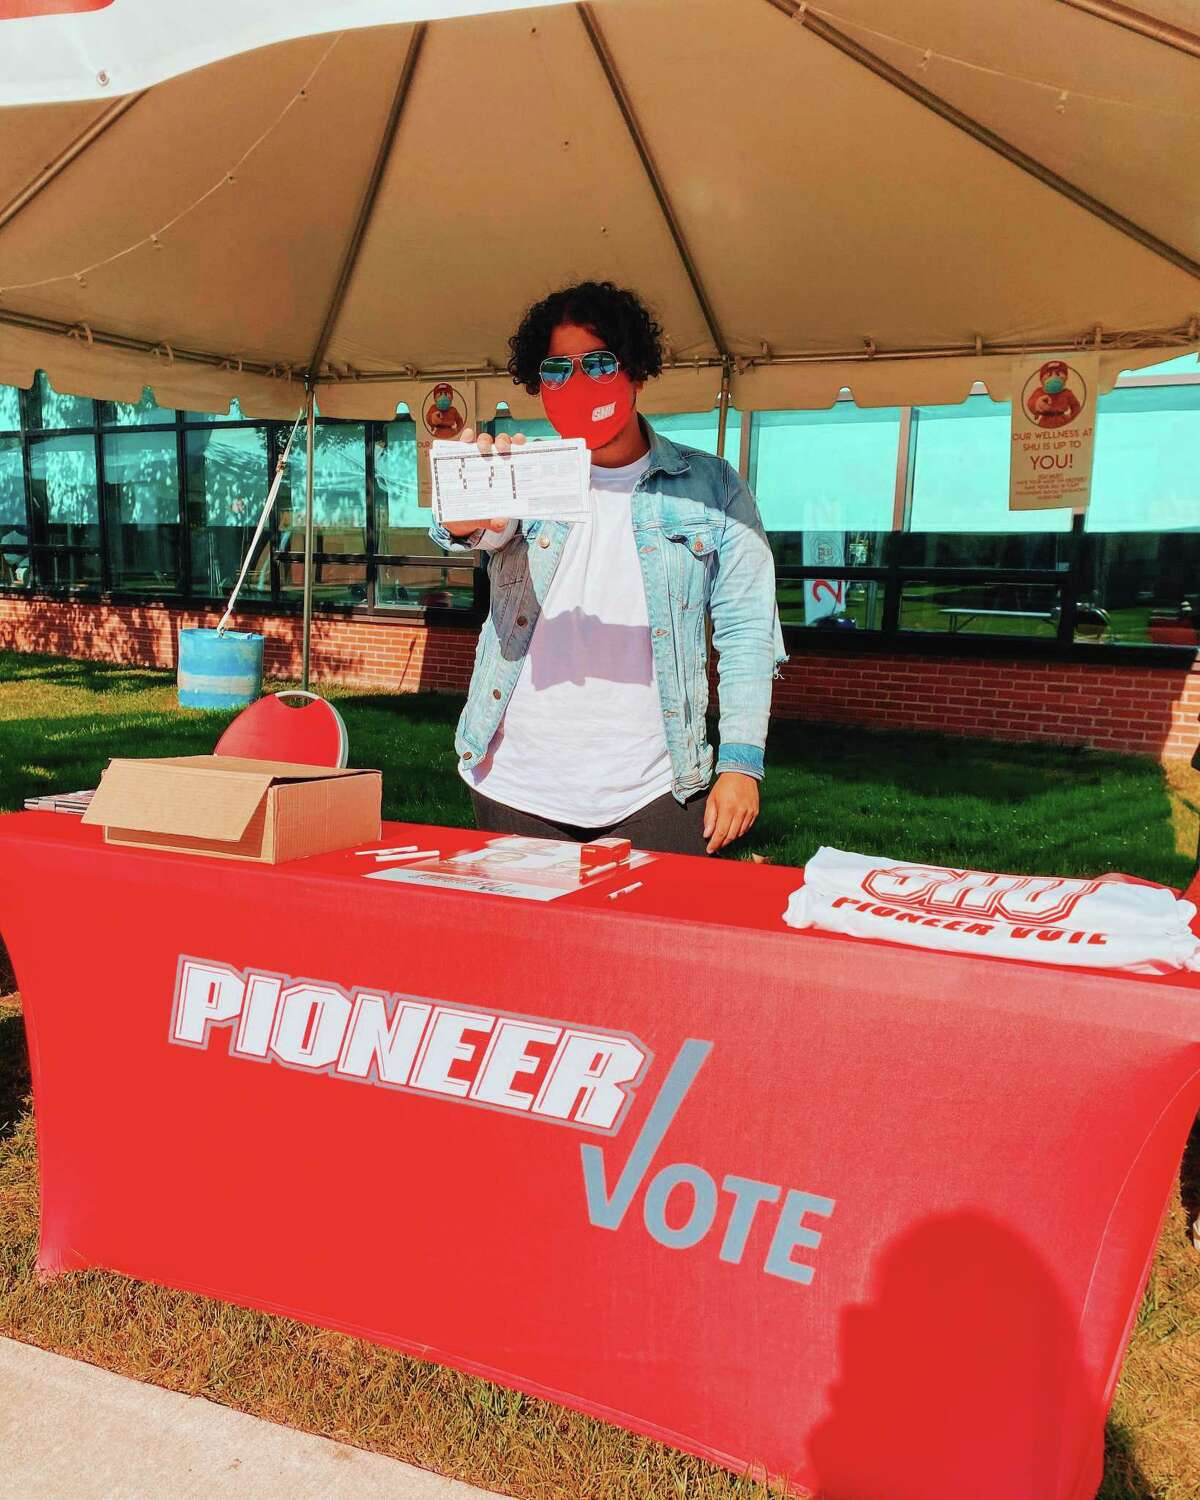 Carlos Ruiz, president of PioneerVote, at one of the voter drives held in October 2020 at Sacred Heart University.